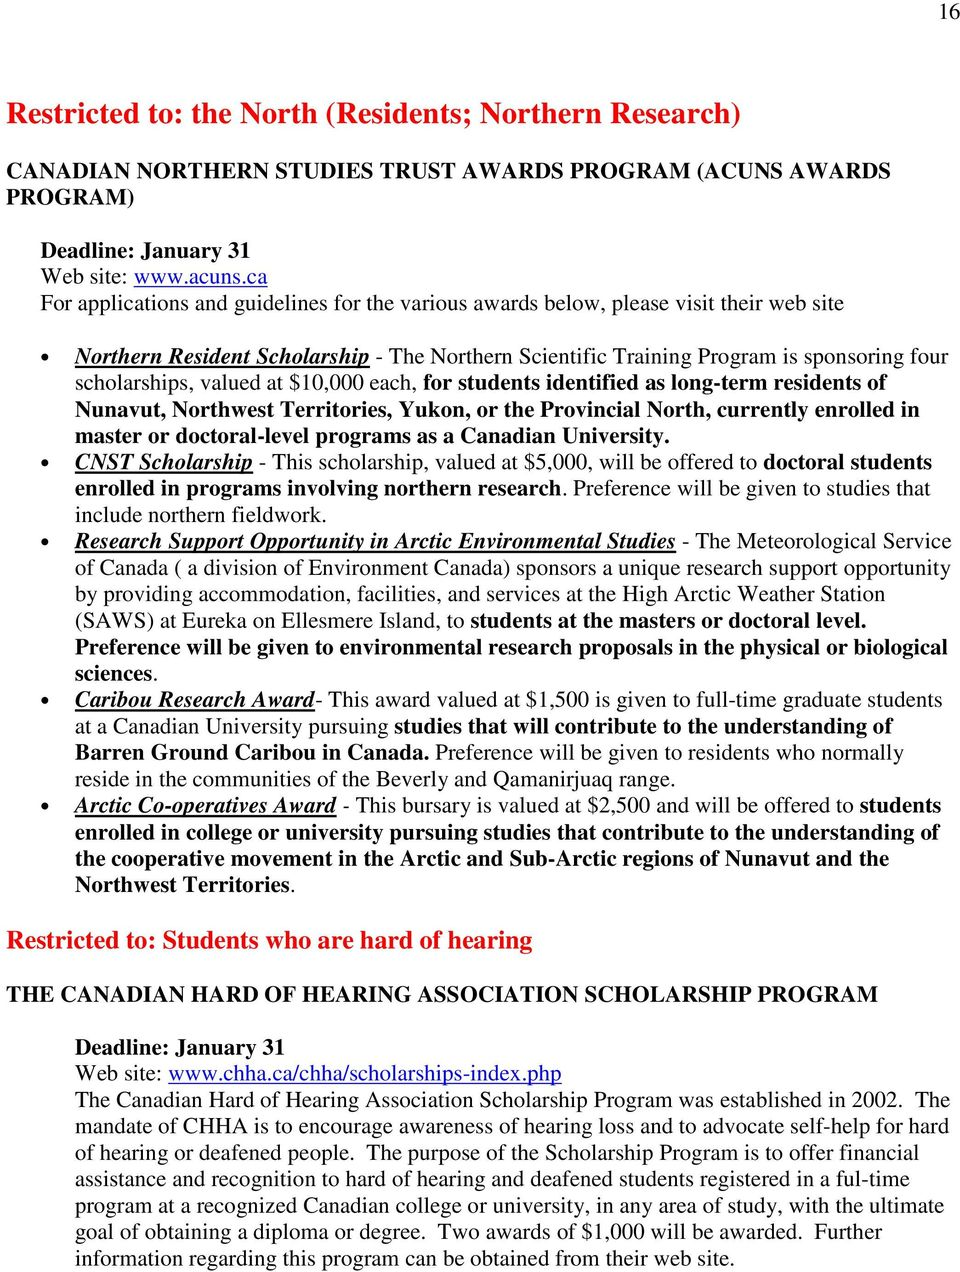 valued at $10,000 each, for students identified as long-term residents of Nunavut, Northwest Territories, Yukon, or the Provincial North, currently enrolled in master or doctoral-level programs as a